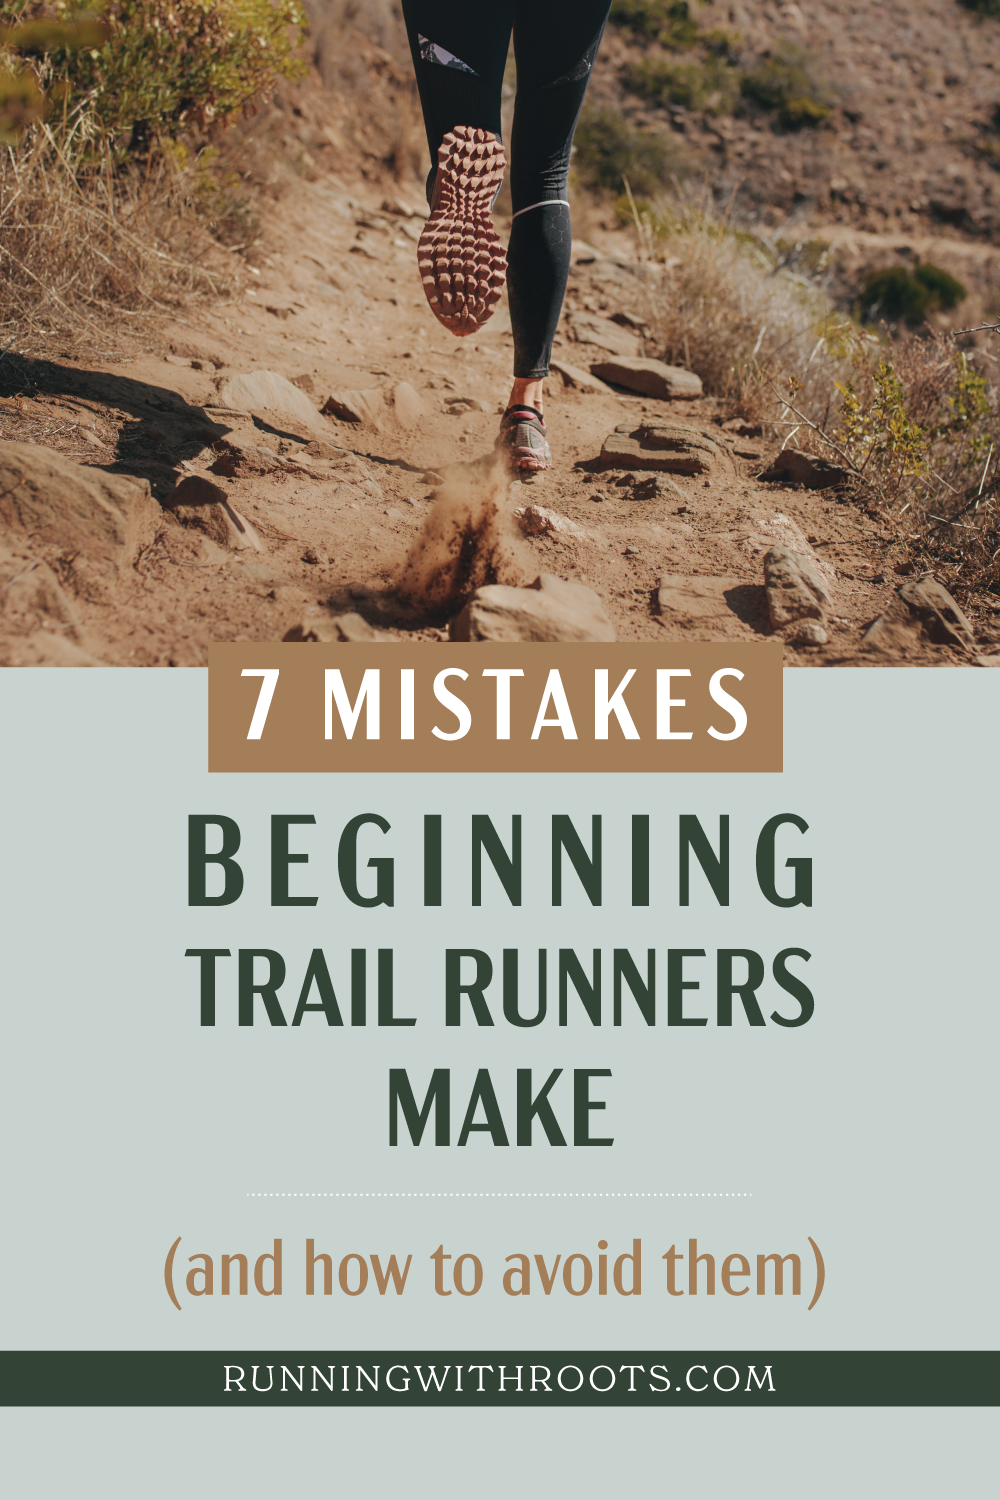 7 mistakes beginning trail runners make and how to avoid them